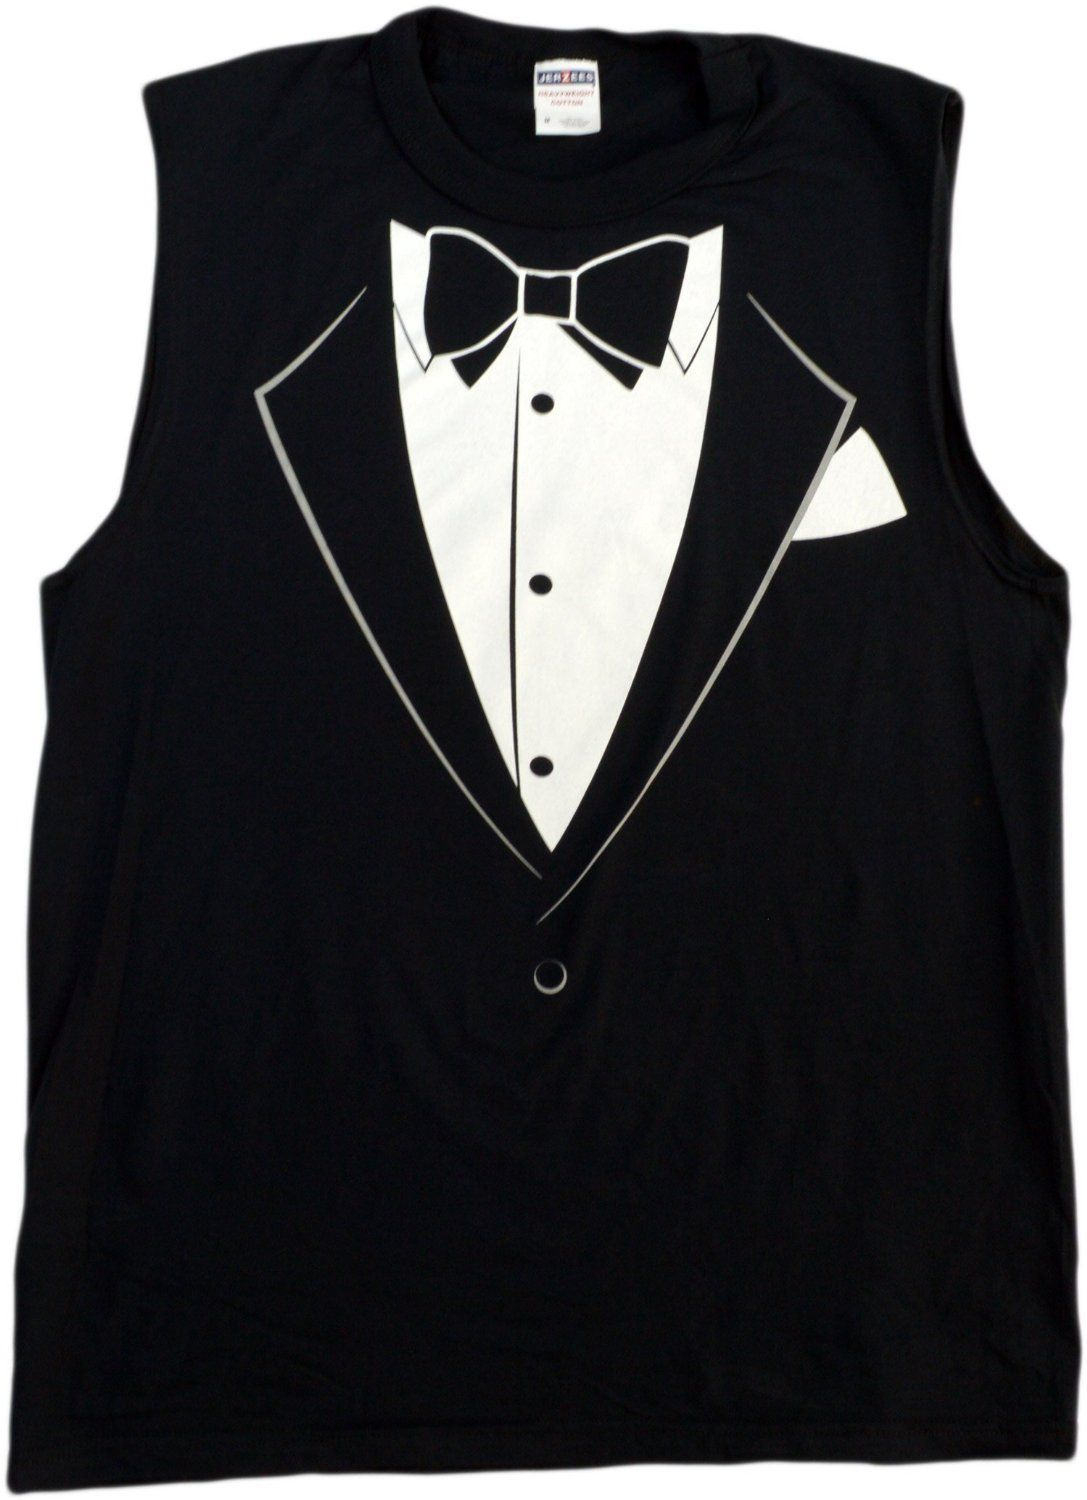 SLEEVELESS TUXEDO T-shirt / Funny Redneck Wedding, Bachelor Party ...